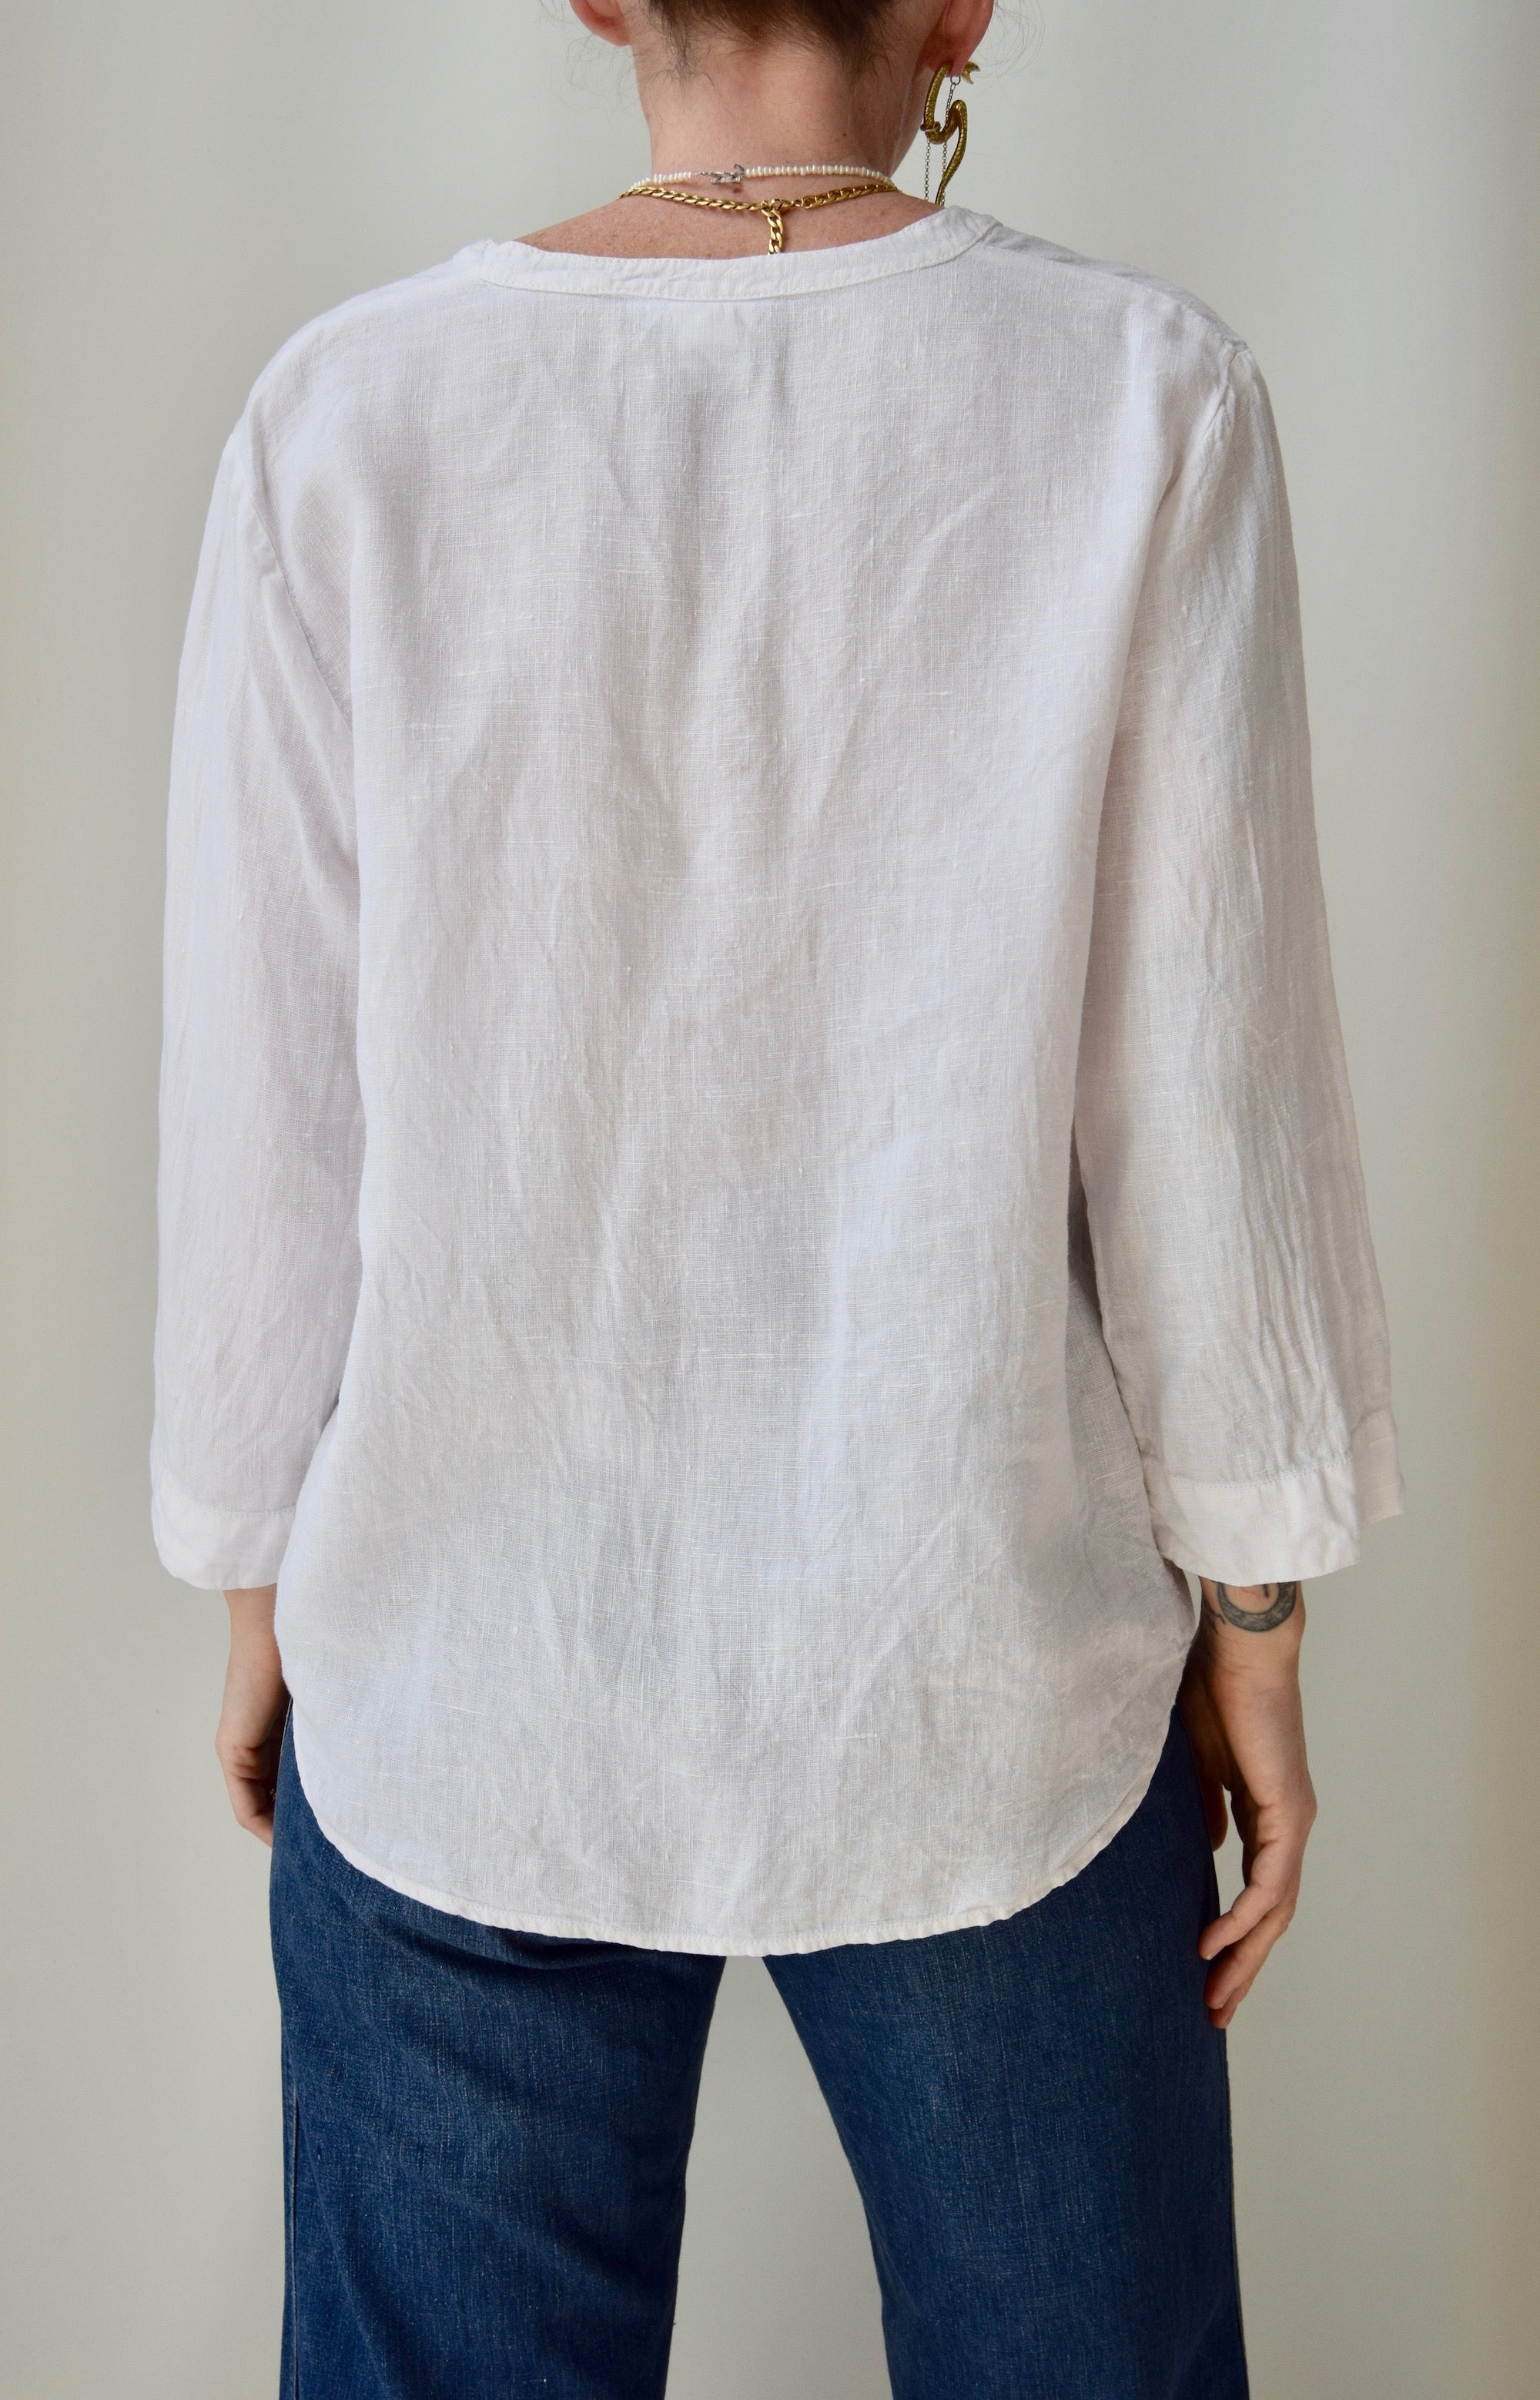 Clean White Linen Top